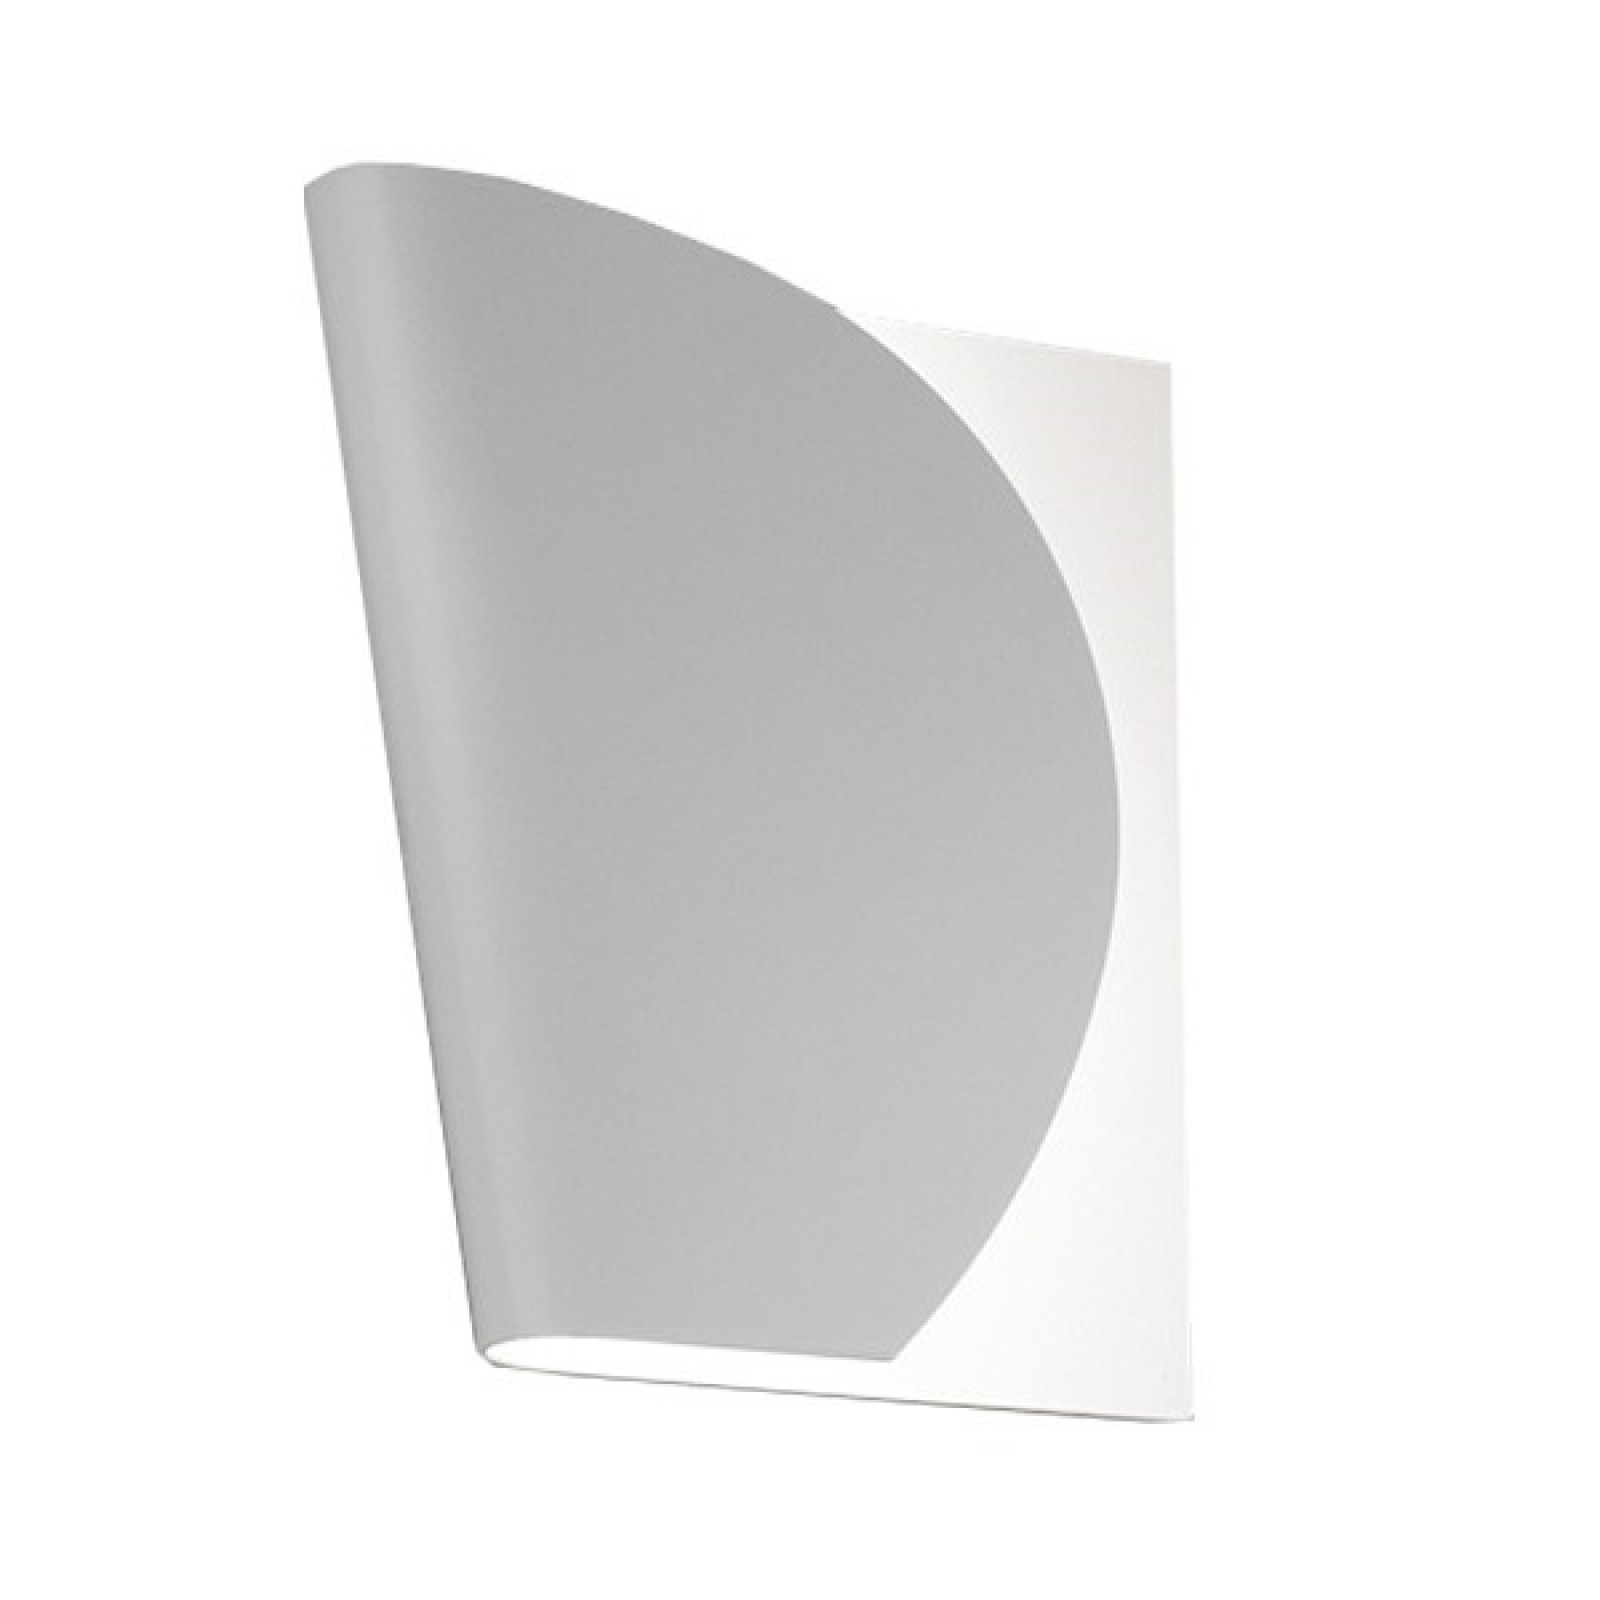 Turn me! Wall Lamp LED - Karboxx